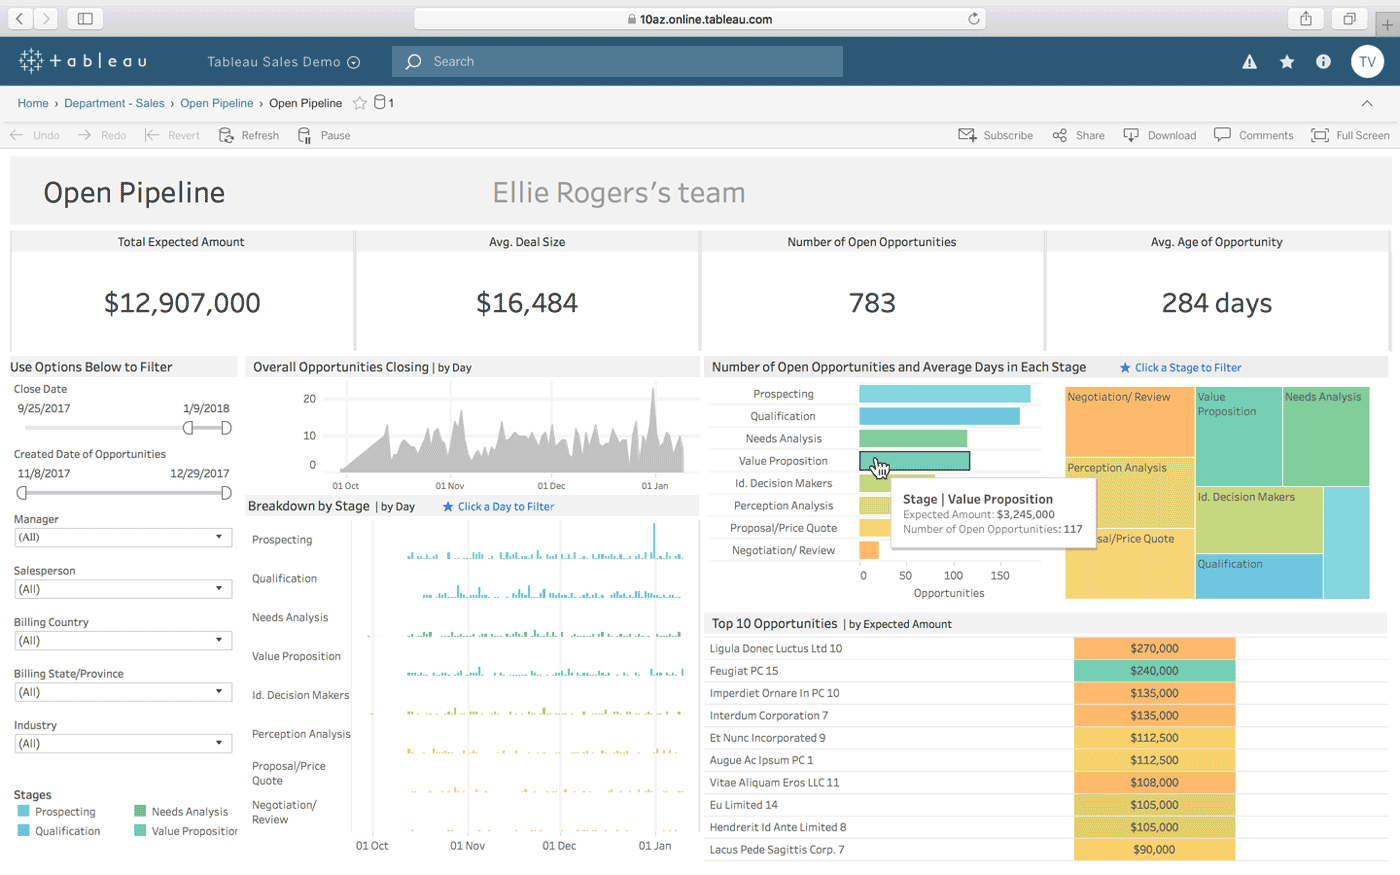 tableau viewer account interacting with dashboard on tableau online